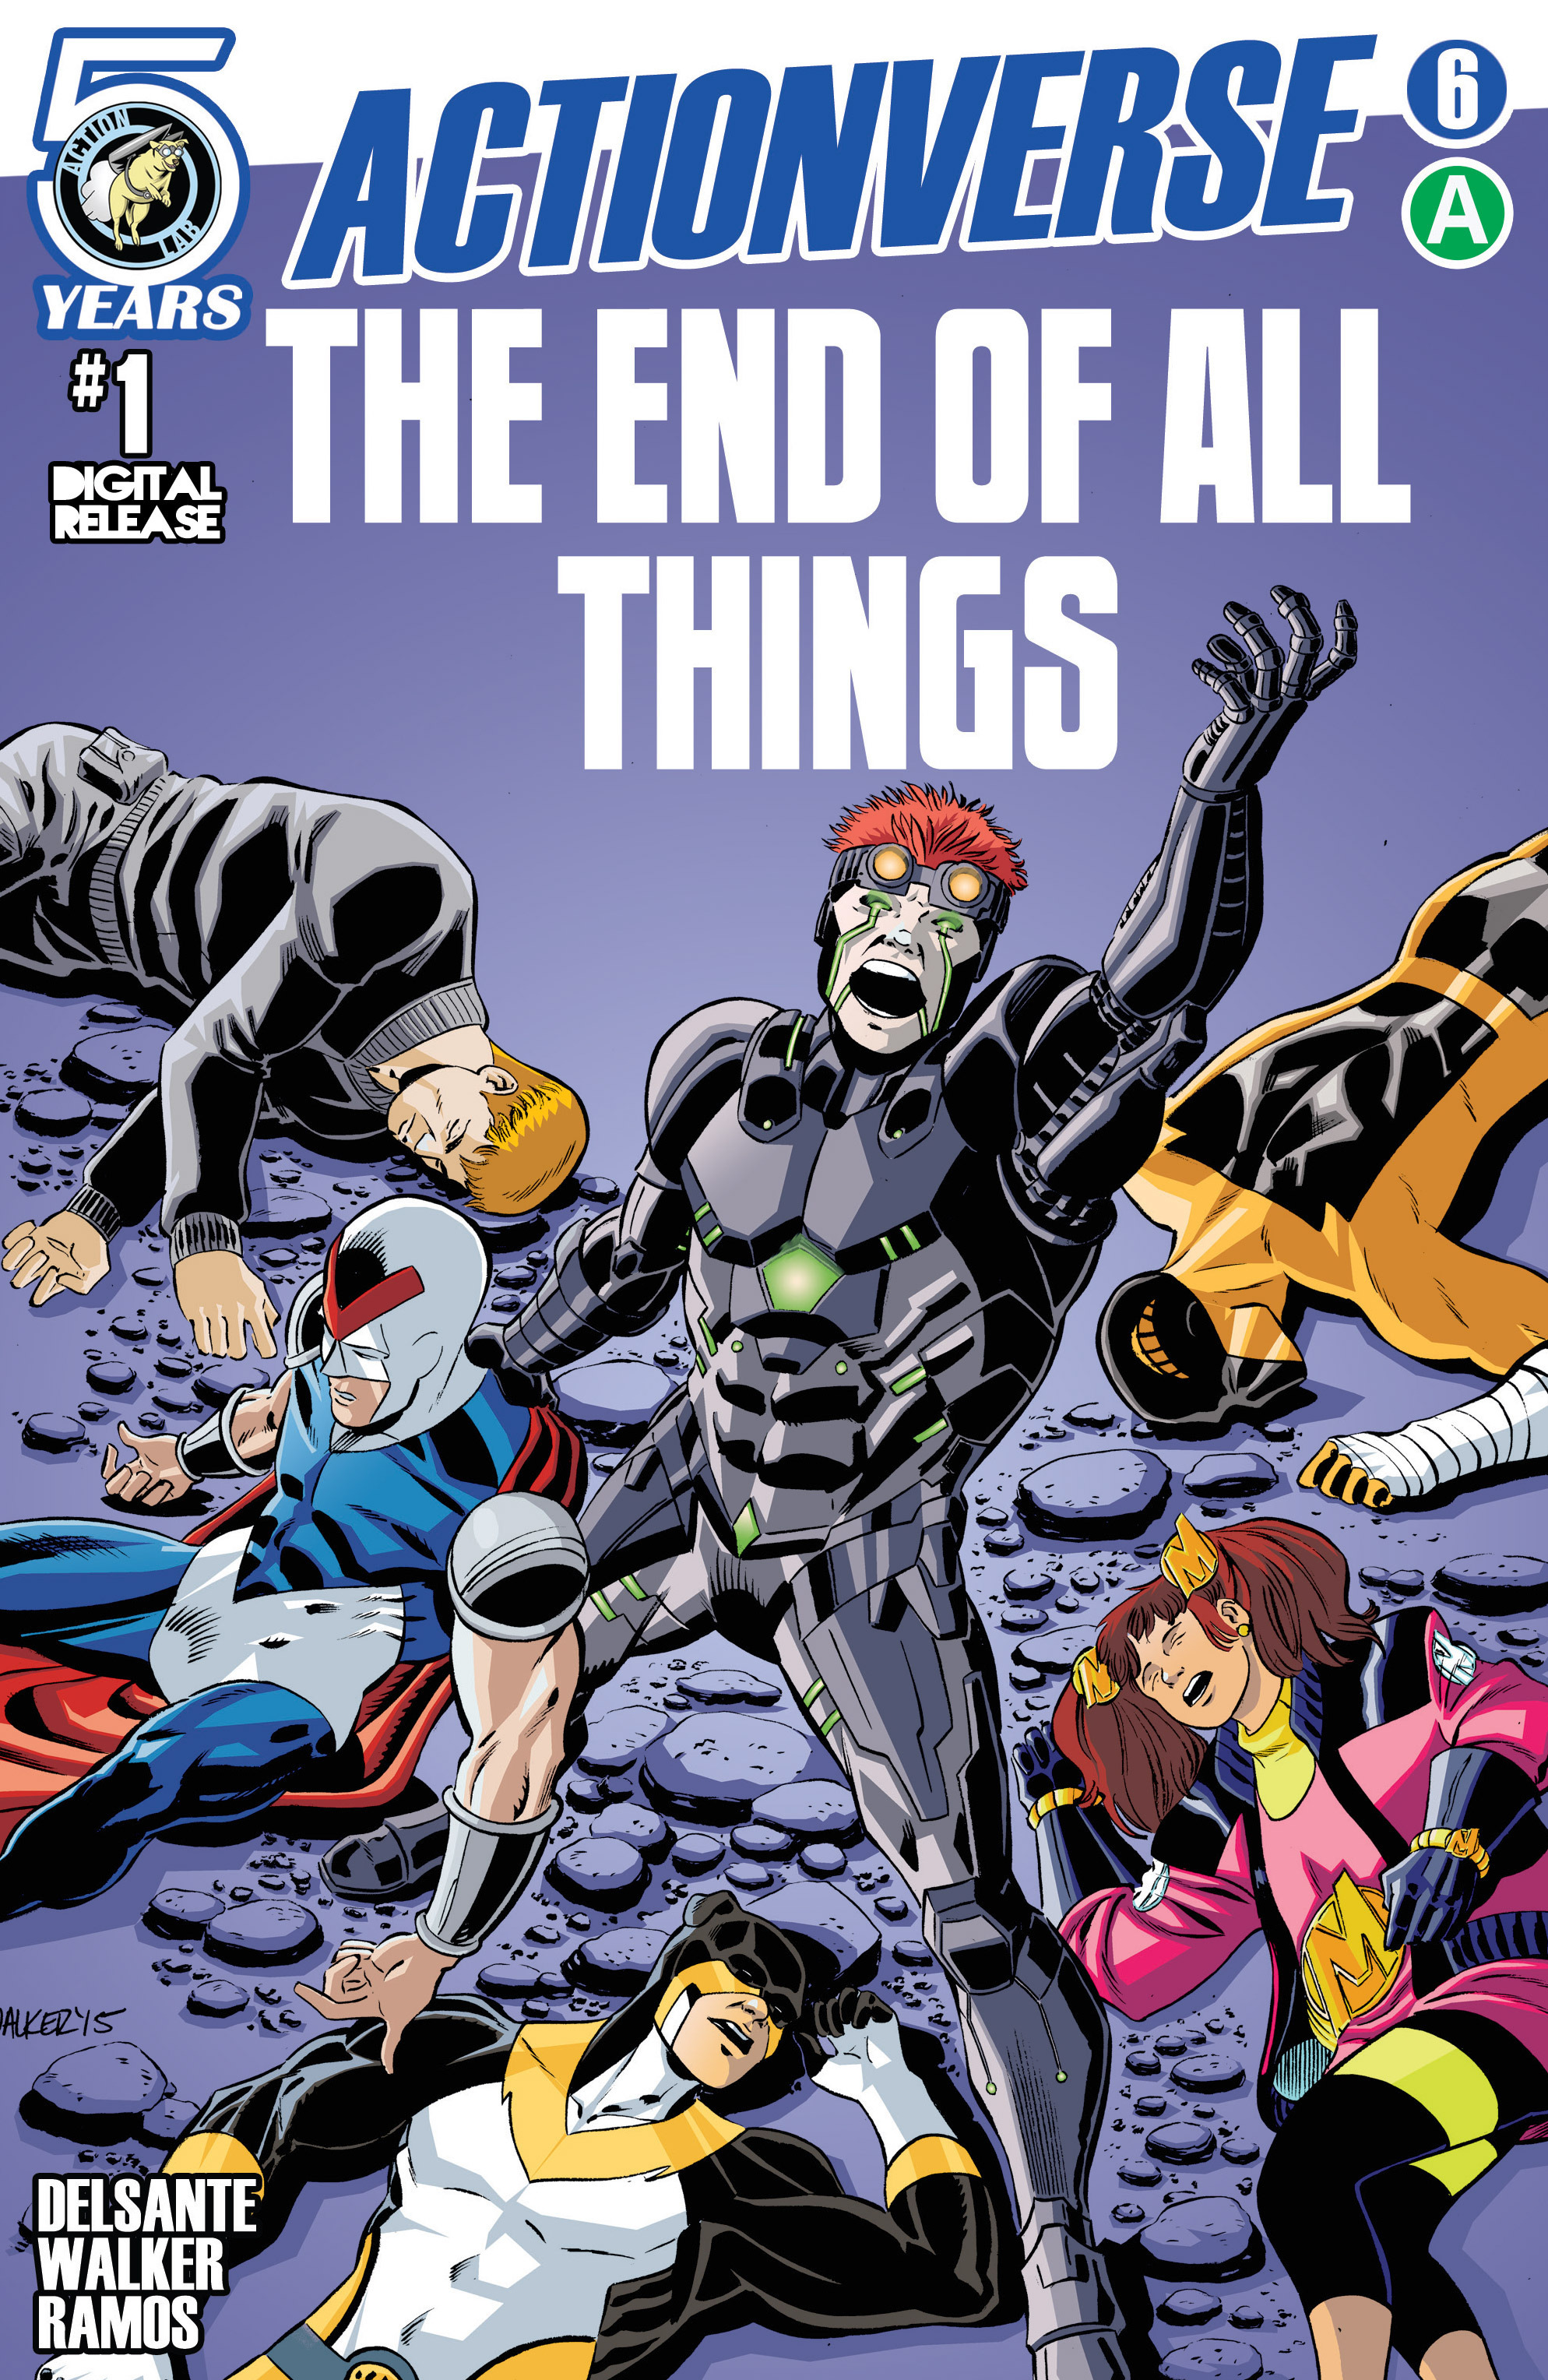 Read online Actionverse comic -  Issue #6 - 1